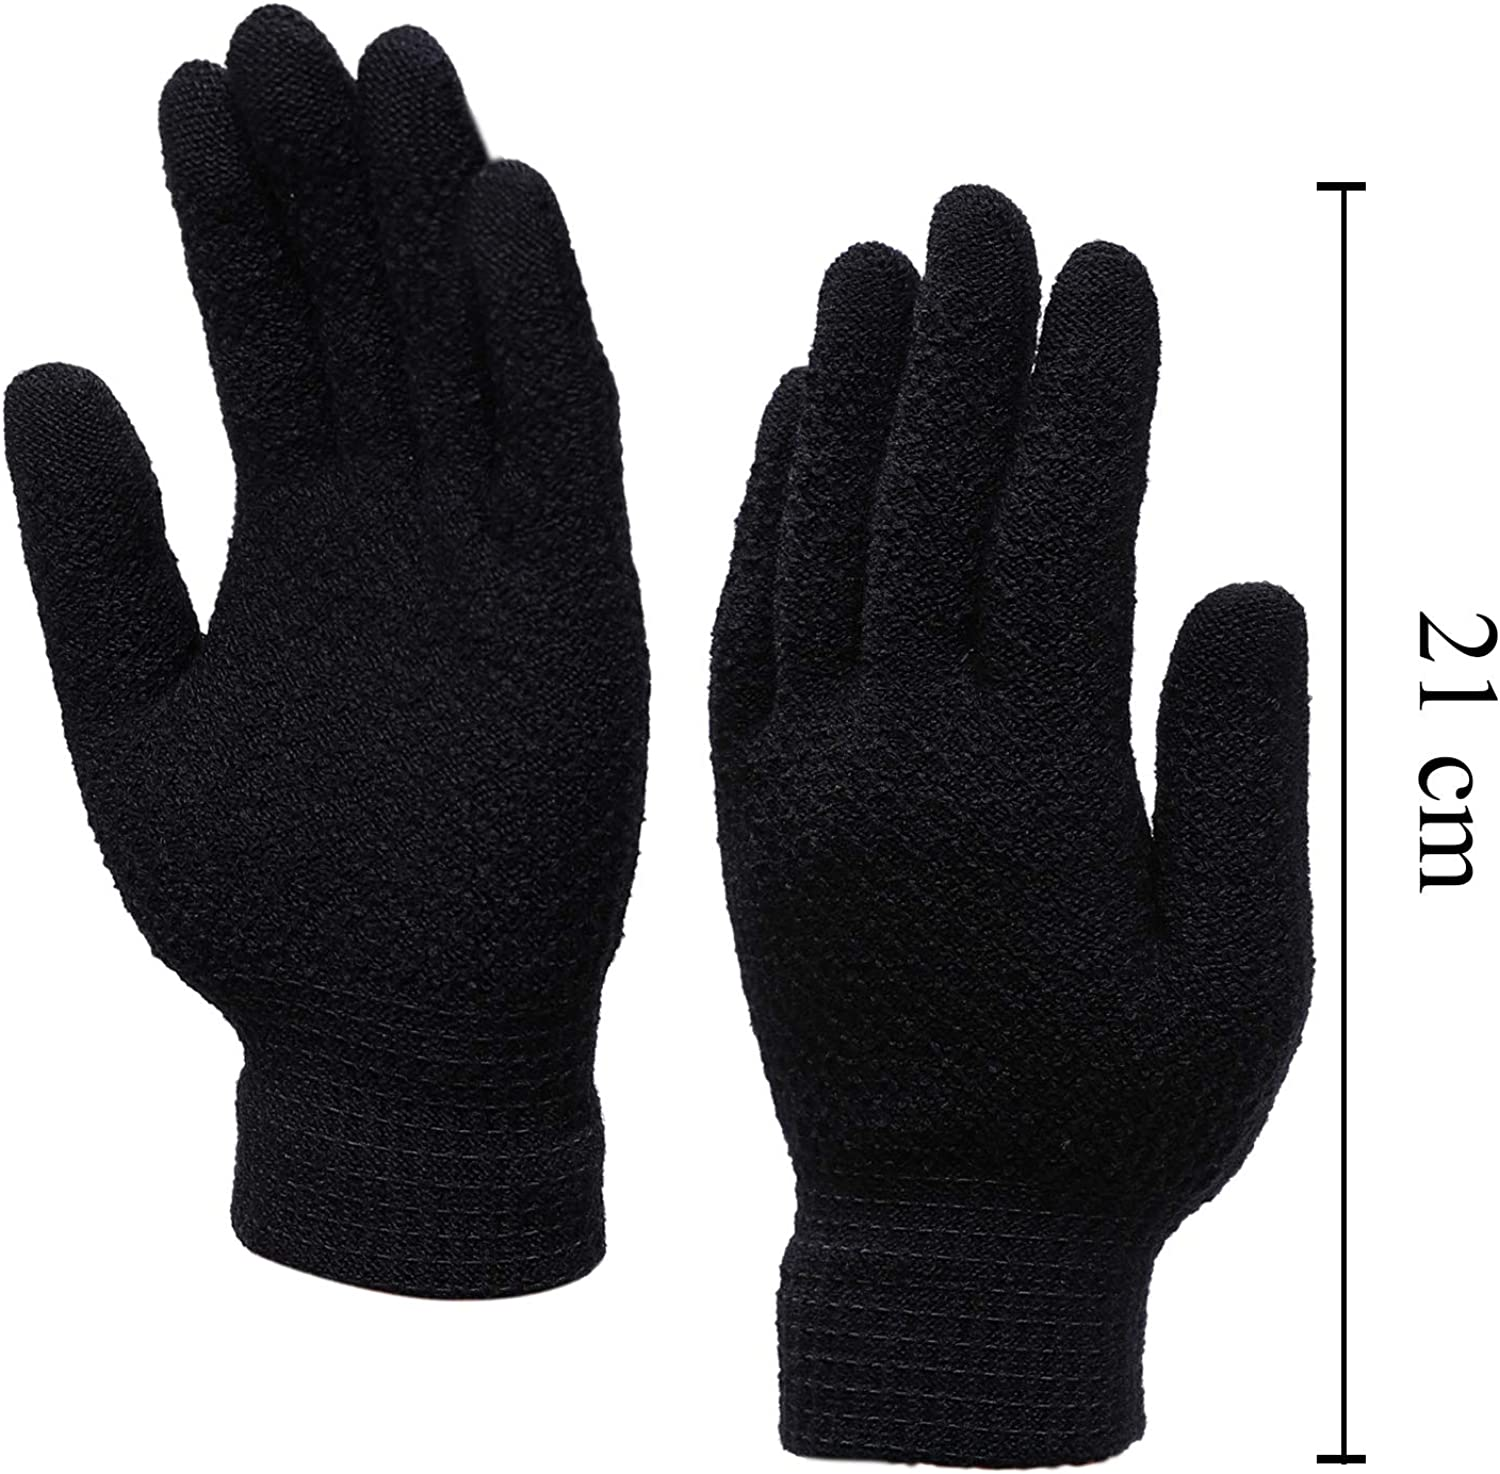 Cooraby 12 Pairs Winter Magic Gloves with Warm Thermal Lining Stretchy Knitted Jacquard Weave Gloves for Men Women or Teens